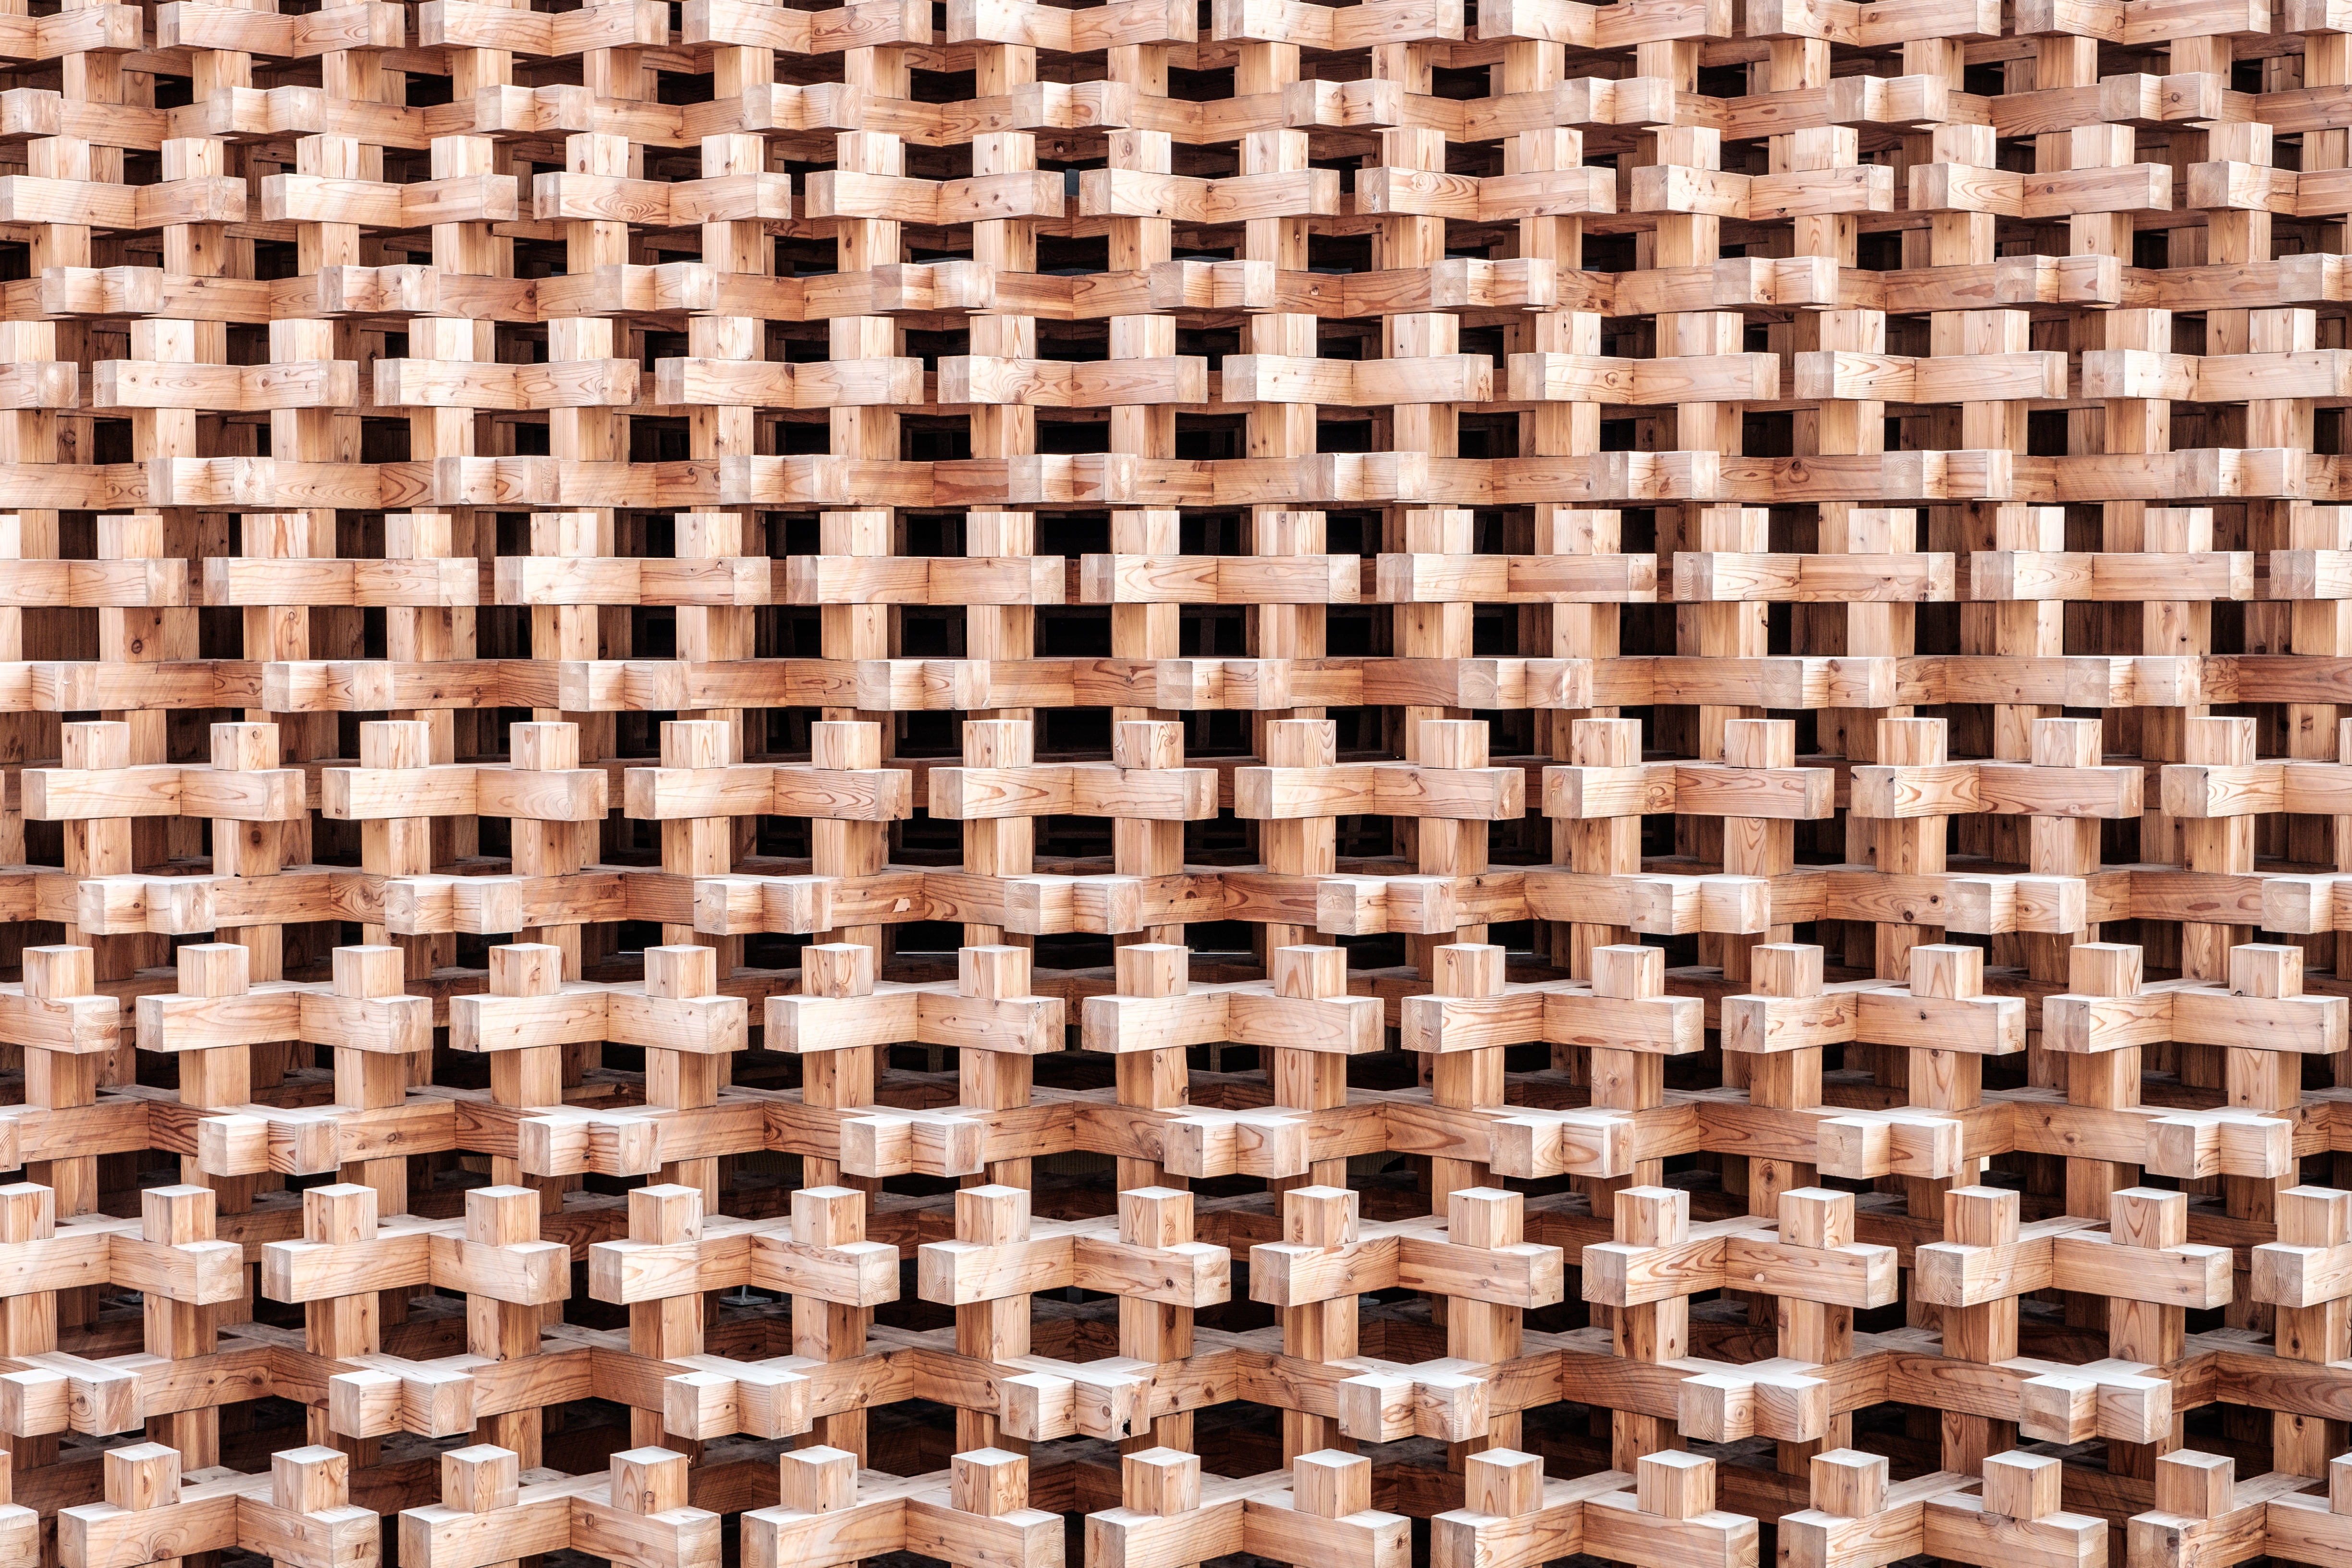 Wooden Structure, Design, Factory, Group, Structure, HQ Photo